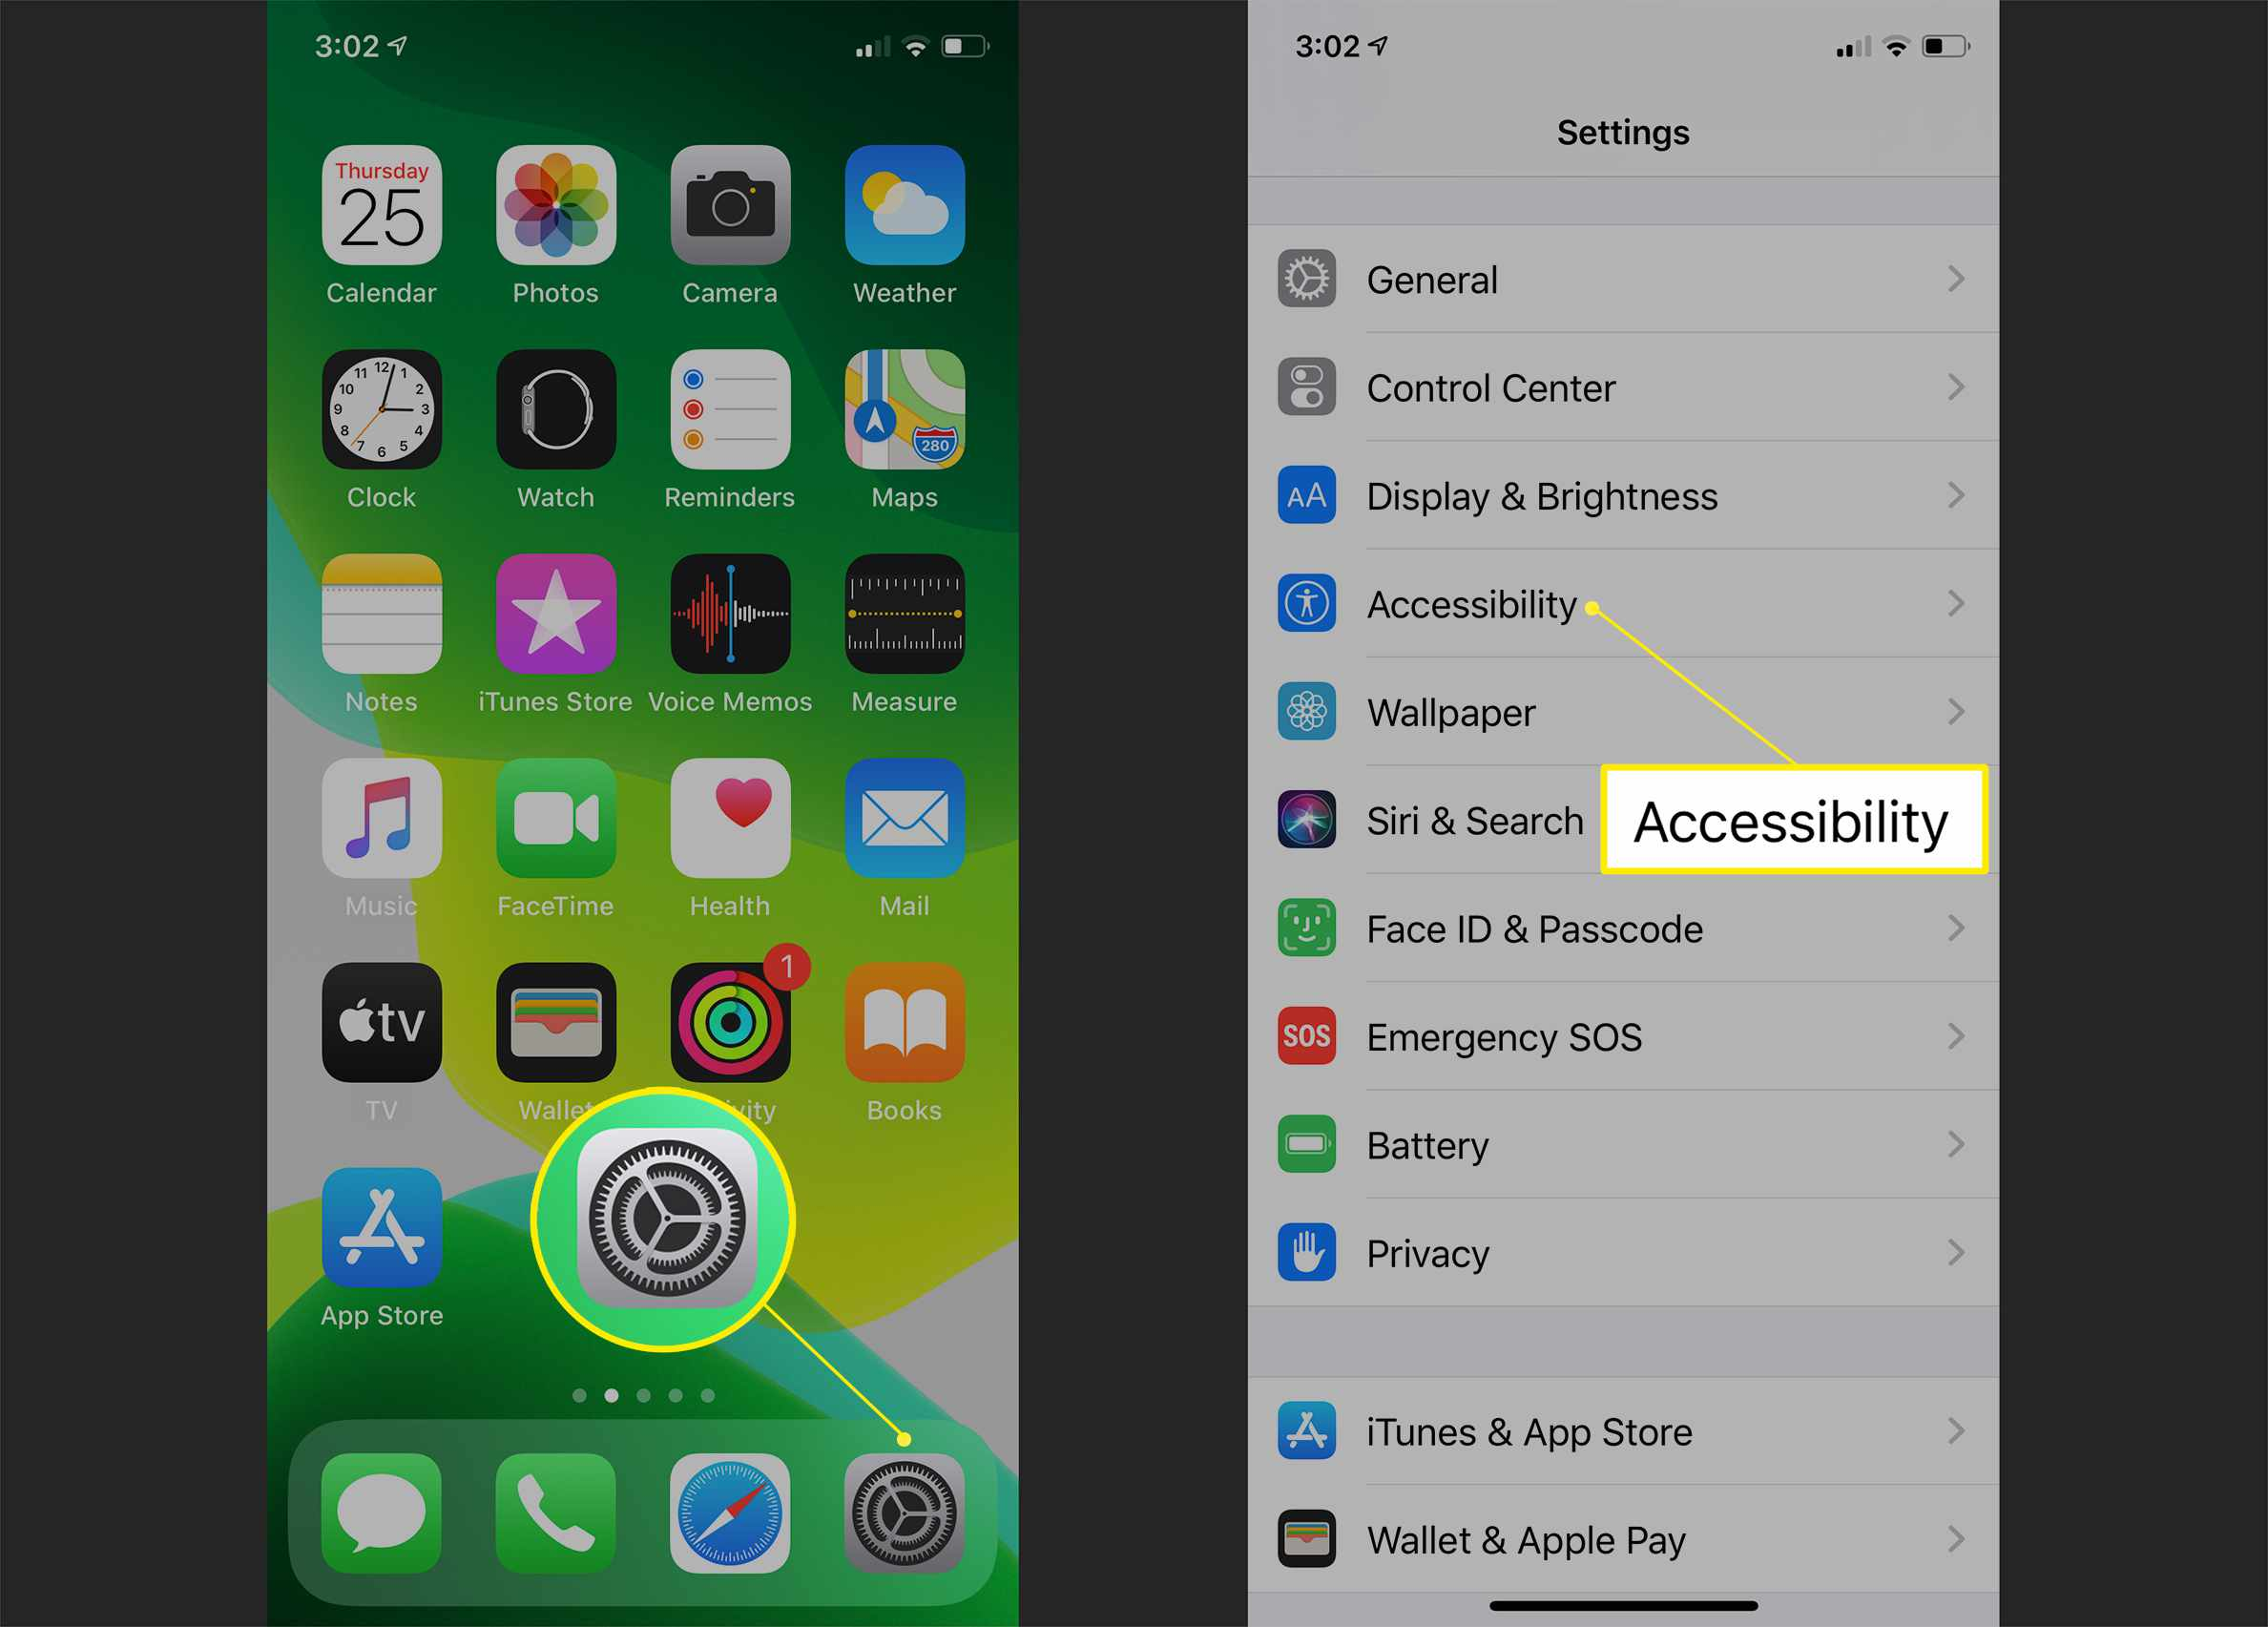 iPhone Settings app and Accessibility option